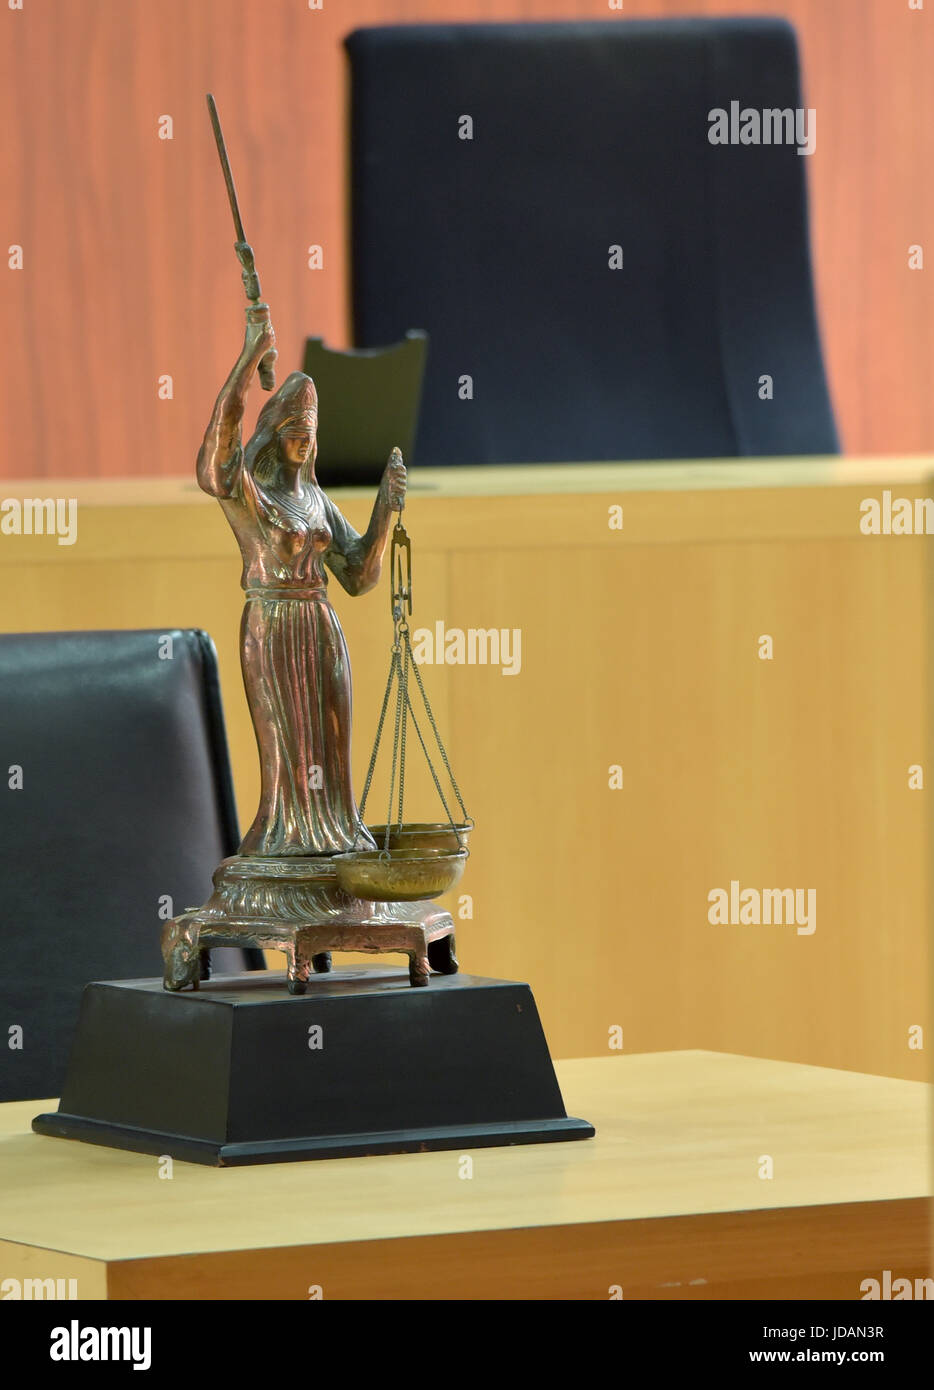 A law statue in front of court bench - Stock Image